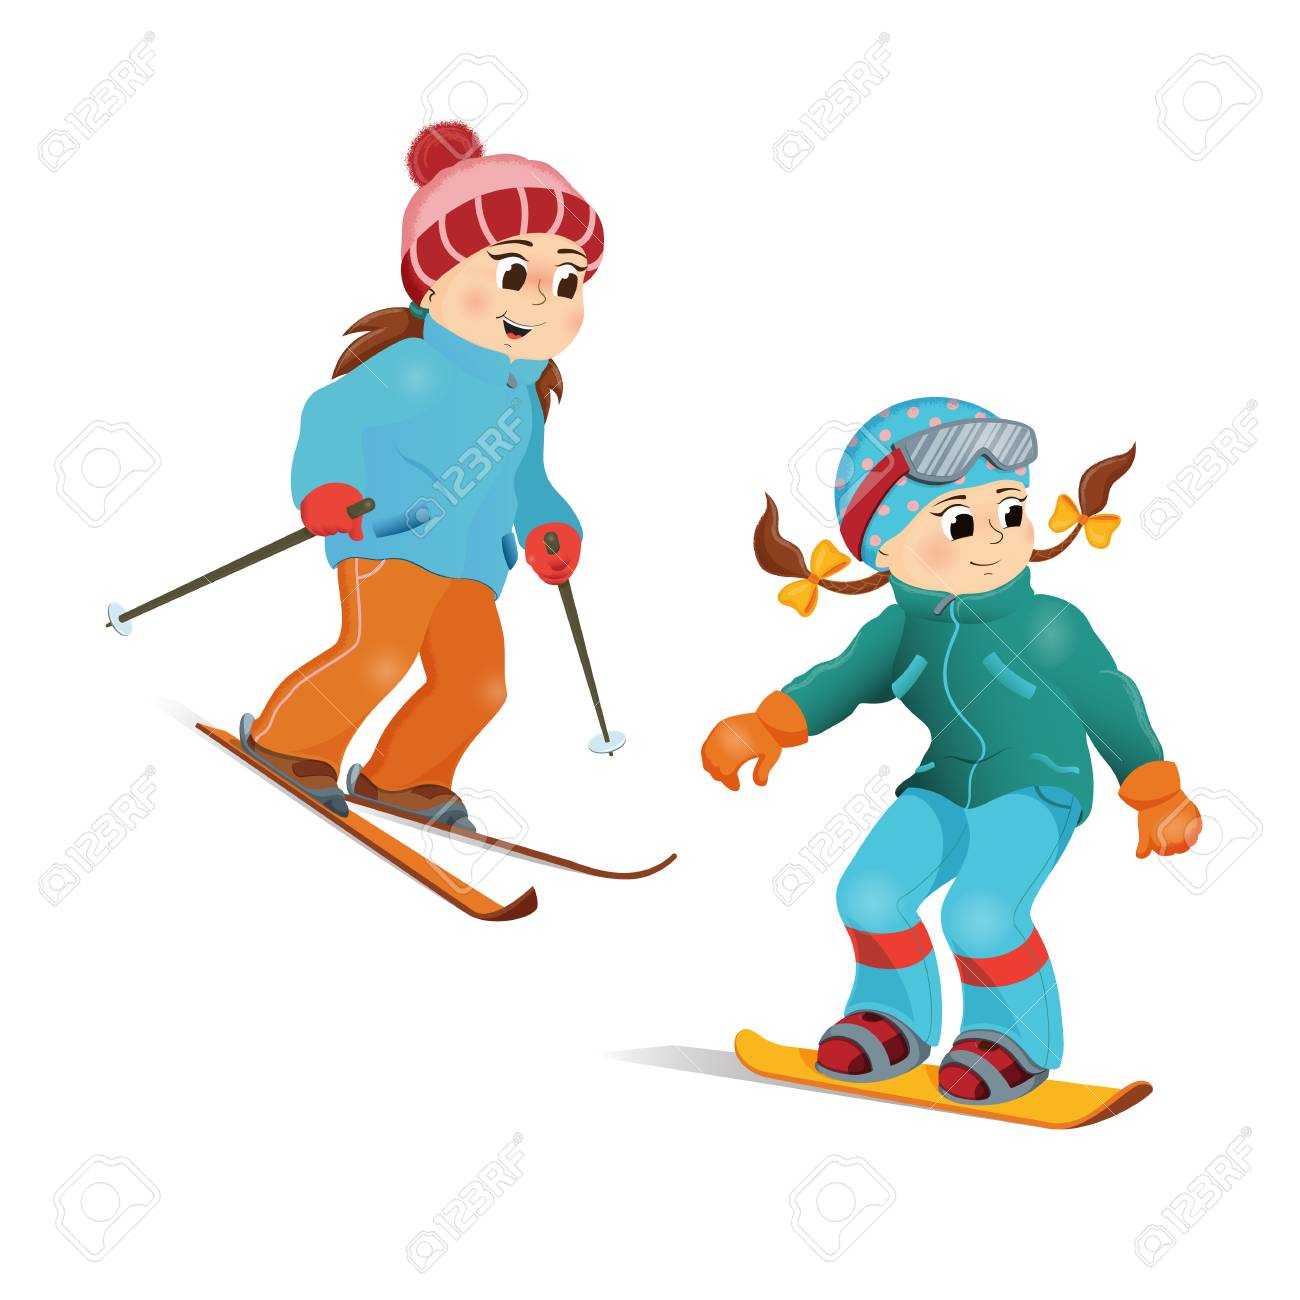 b5f6f6132c9 Illustration - Two girls in warm clothes snowboarding and skiing